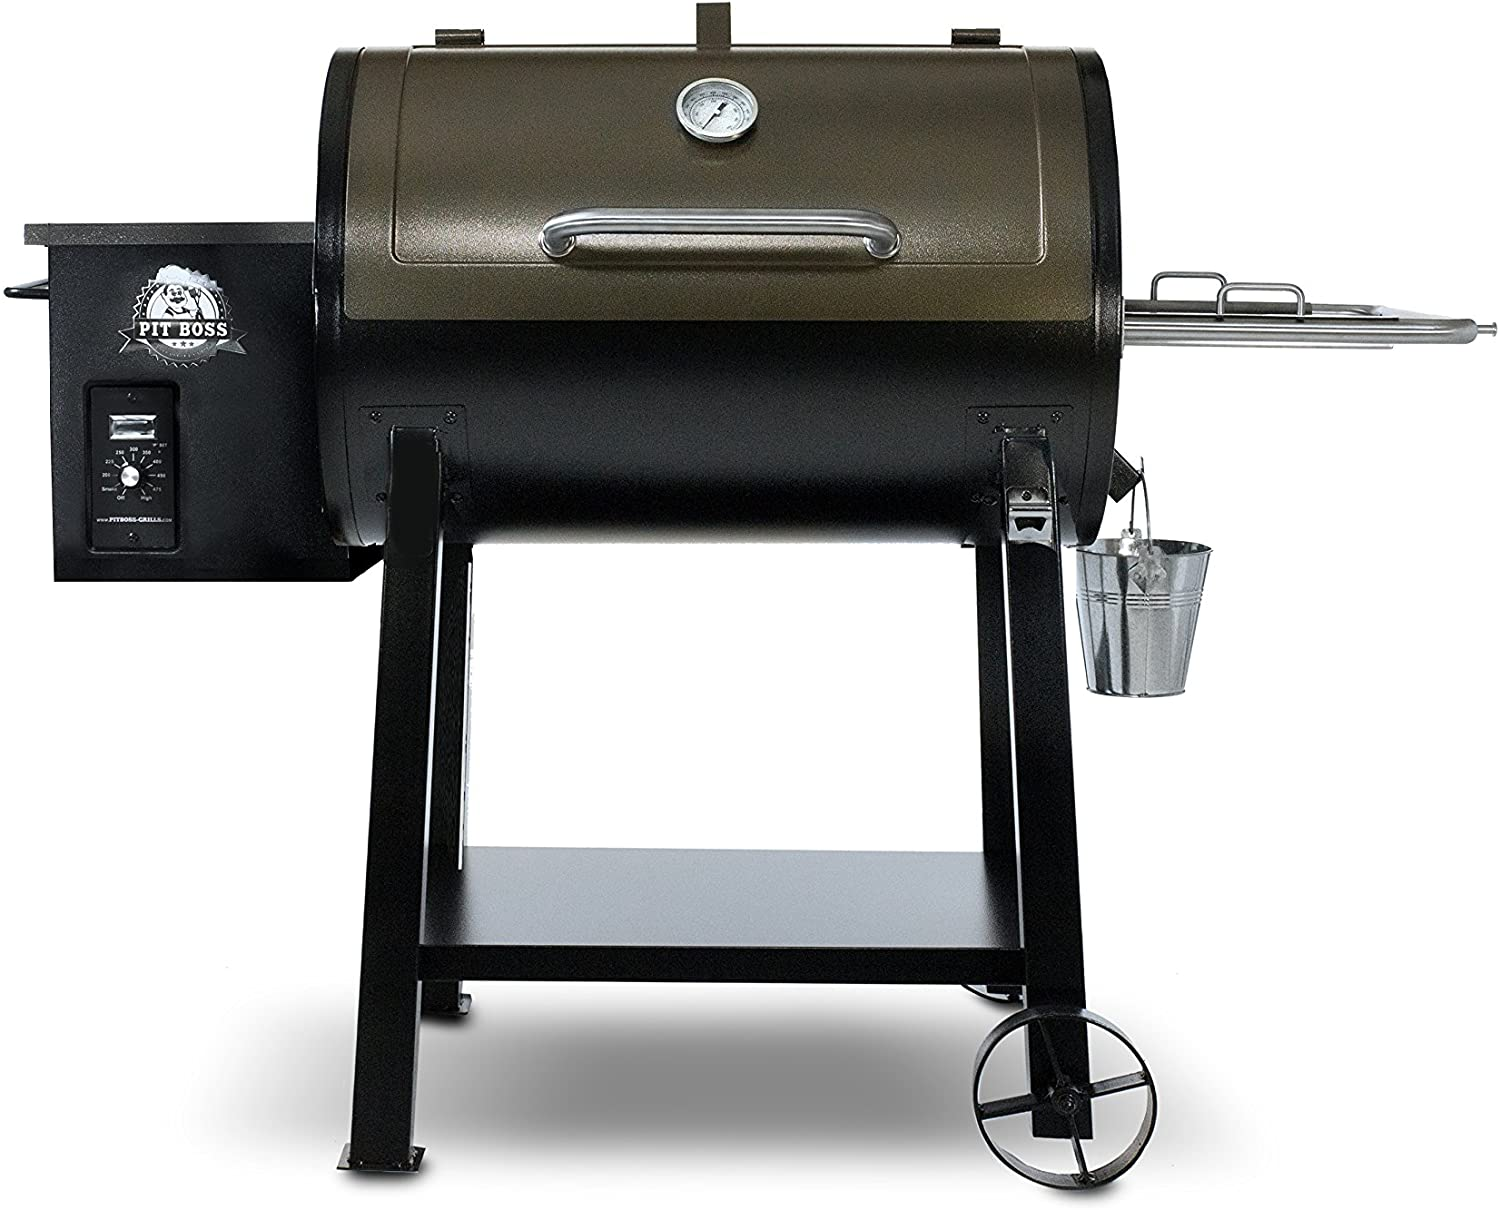 PIT-BOSS-72440-PB440D-LGrill-440-Deluxe-Wood-Pellet-Grill